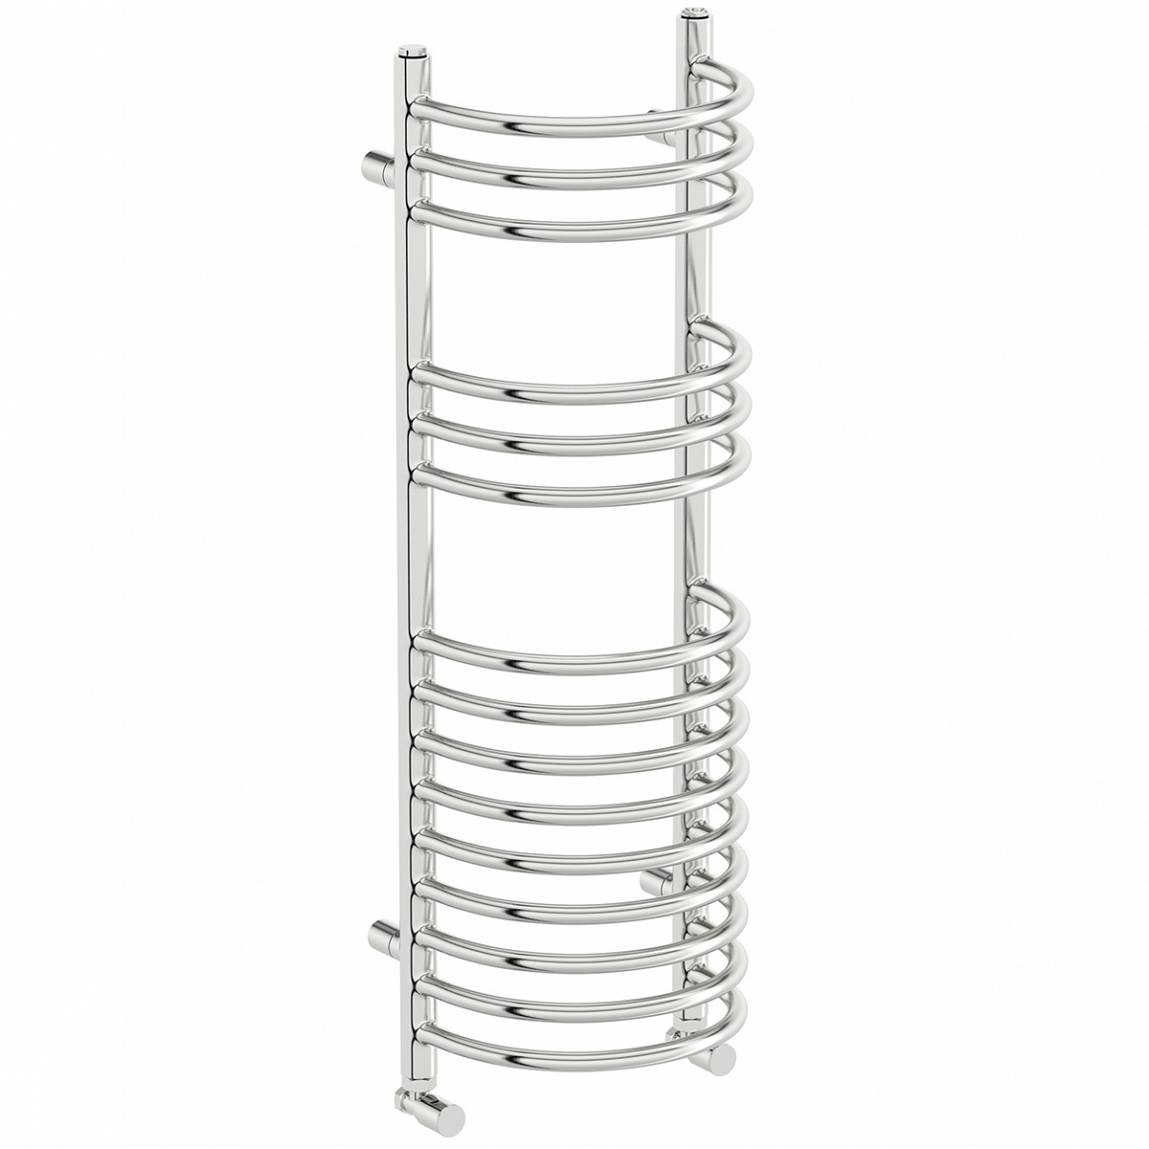 Image of Luna Heated Towel Rail 900 x 320